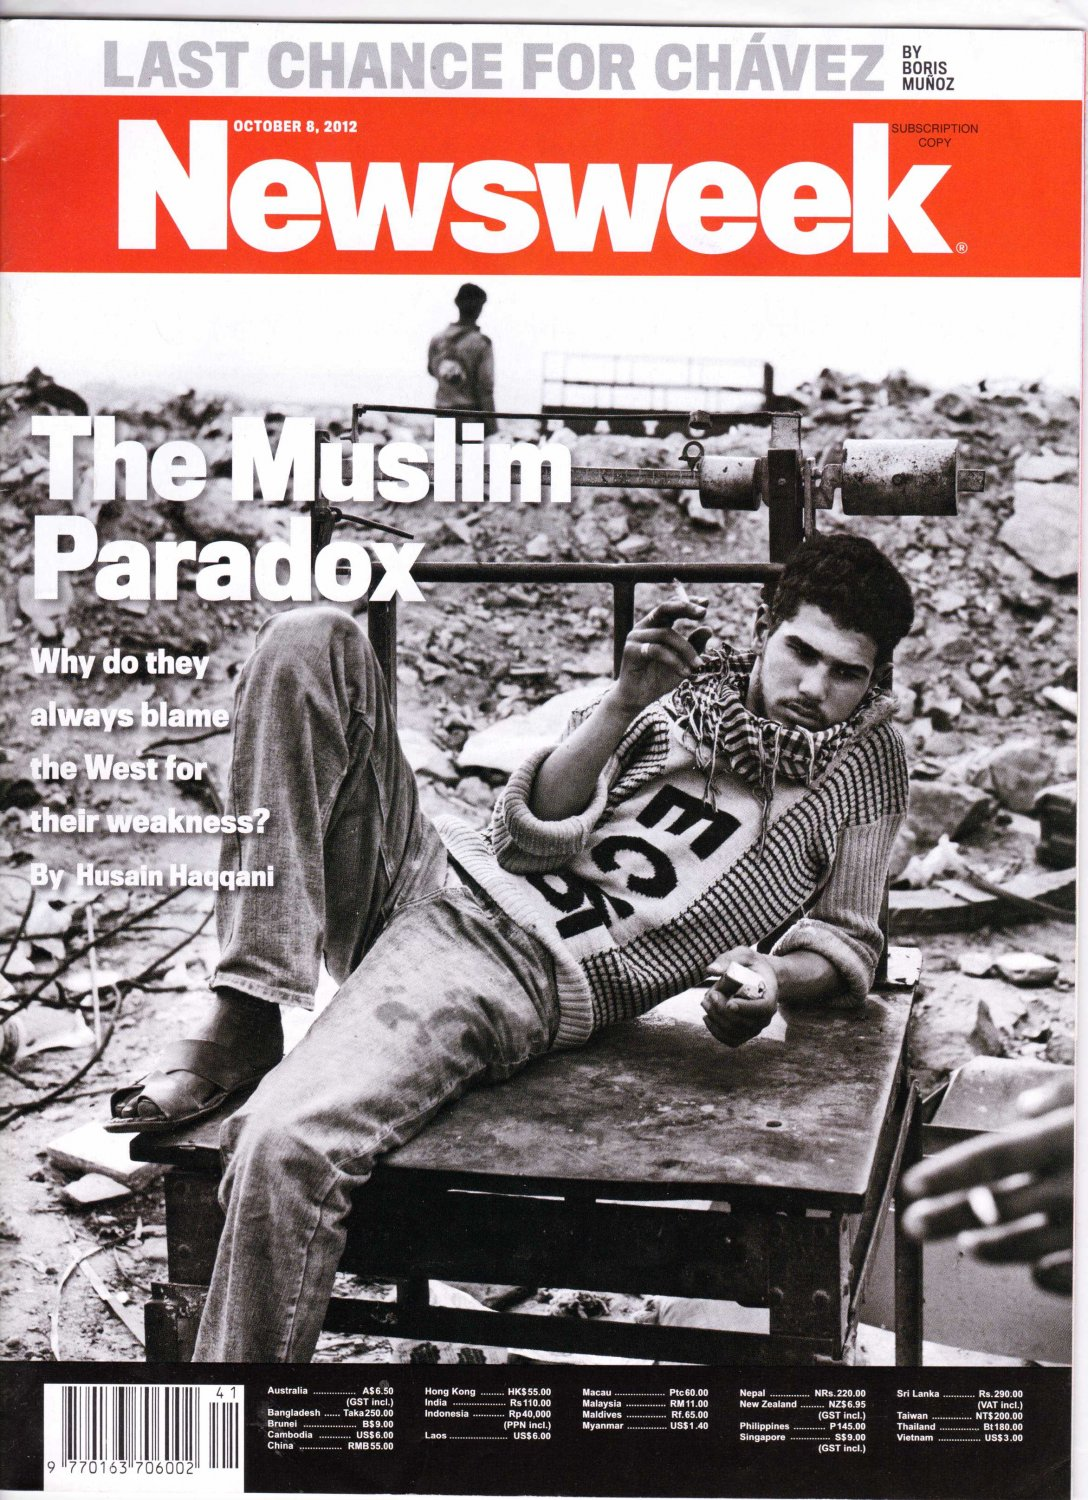 Buy newsweek magazine - Newsweek Magazine \&quot;The Muslim Paradox\&quot; Cover 10/8/2012